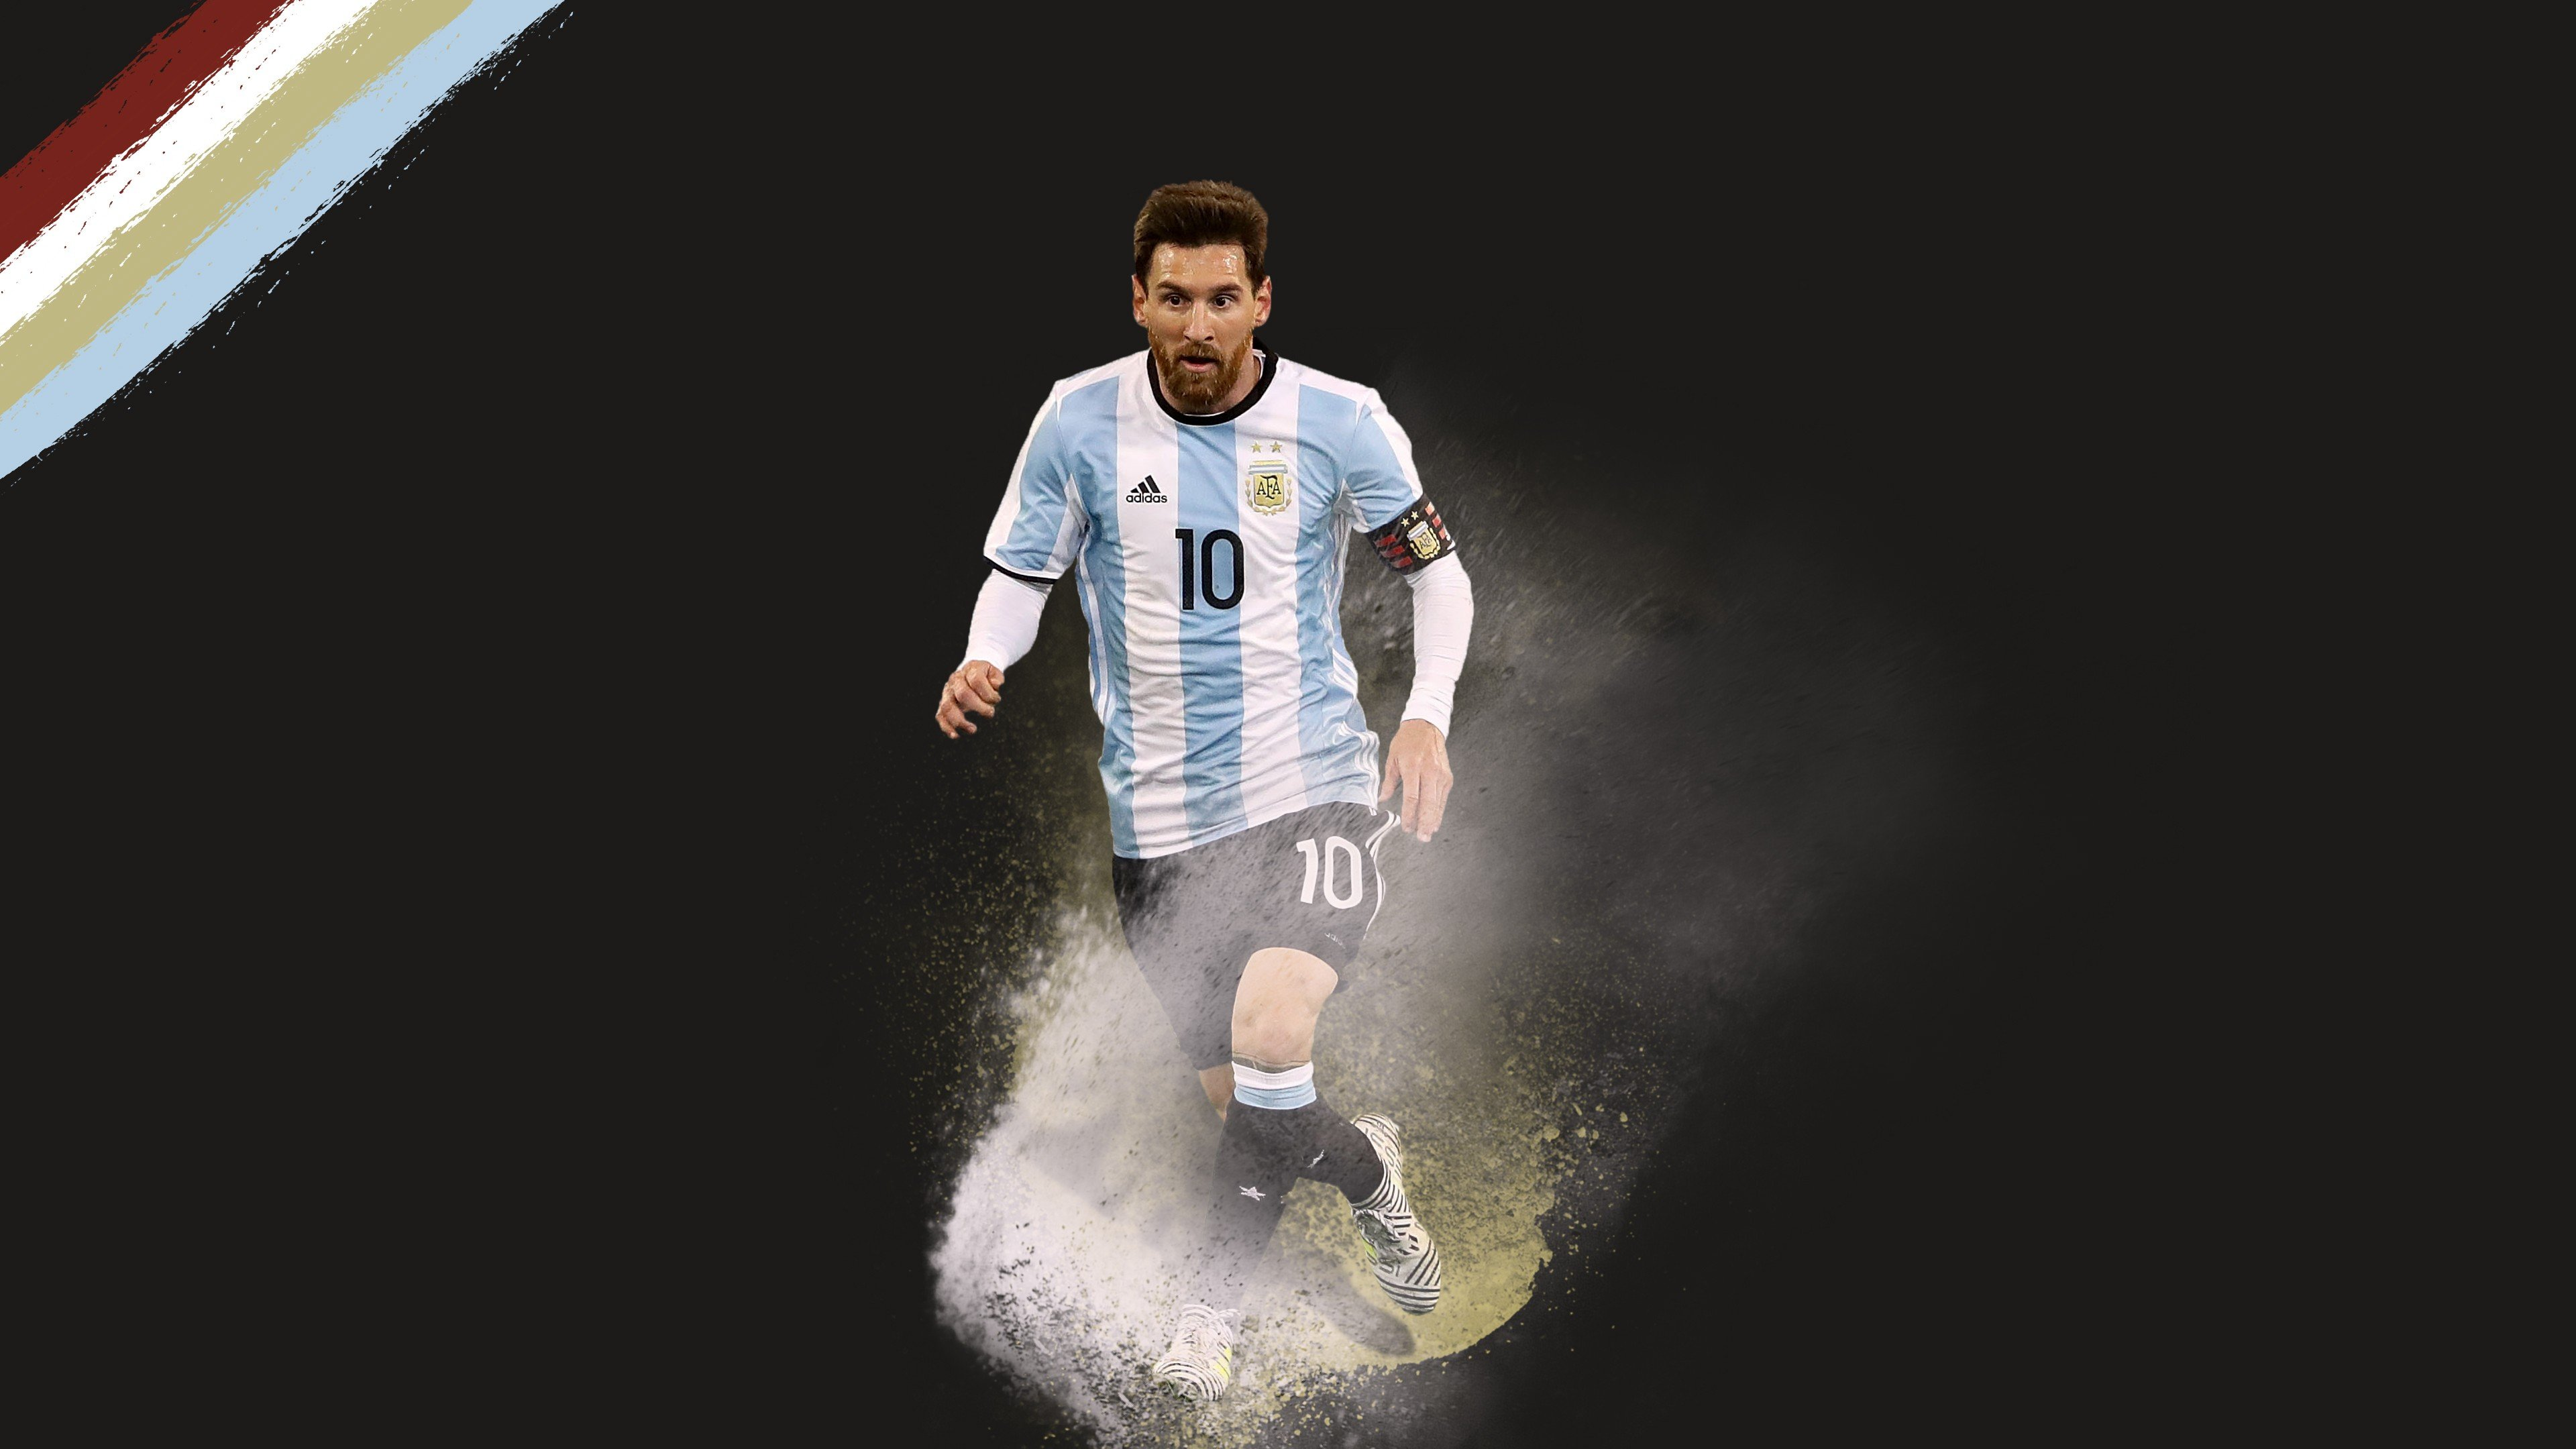 Wallpaper Lionel Messi soccer football 4k Sport 16301 3840x2160